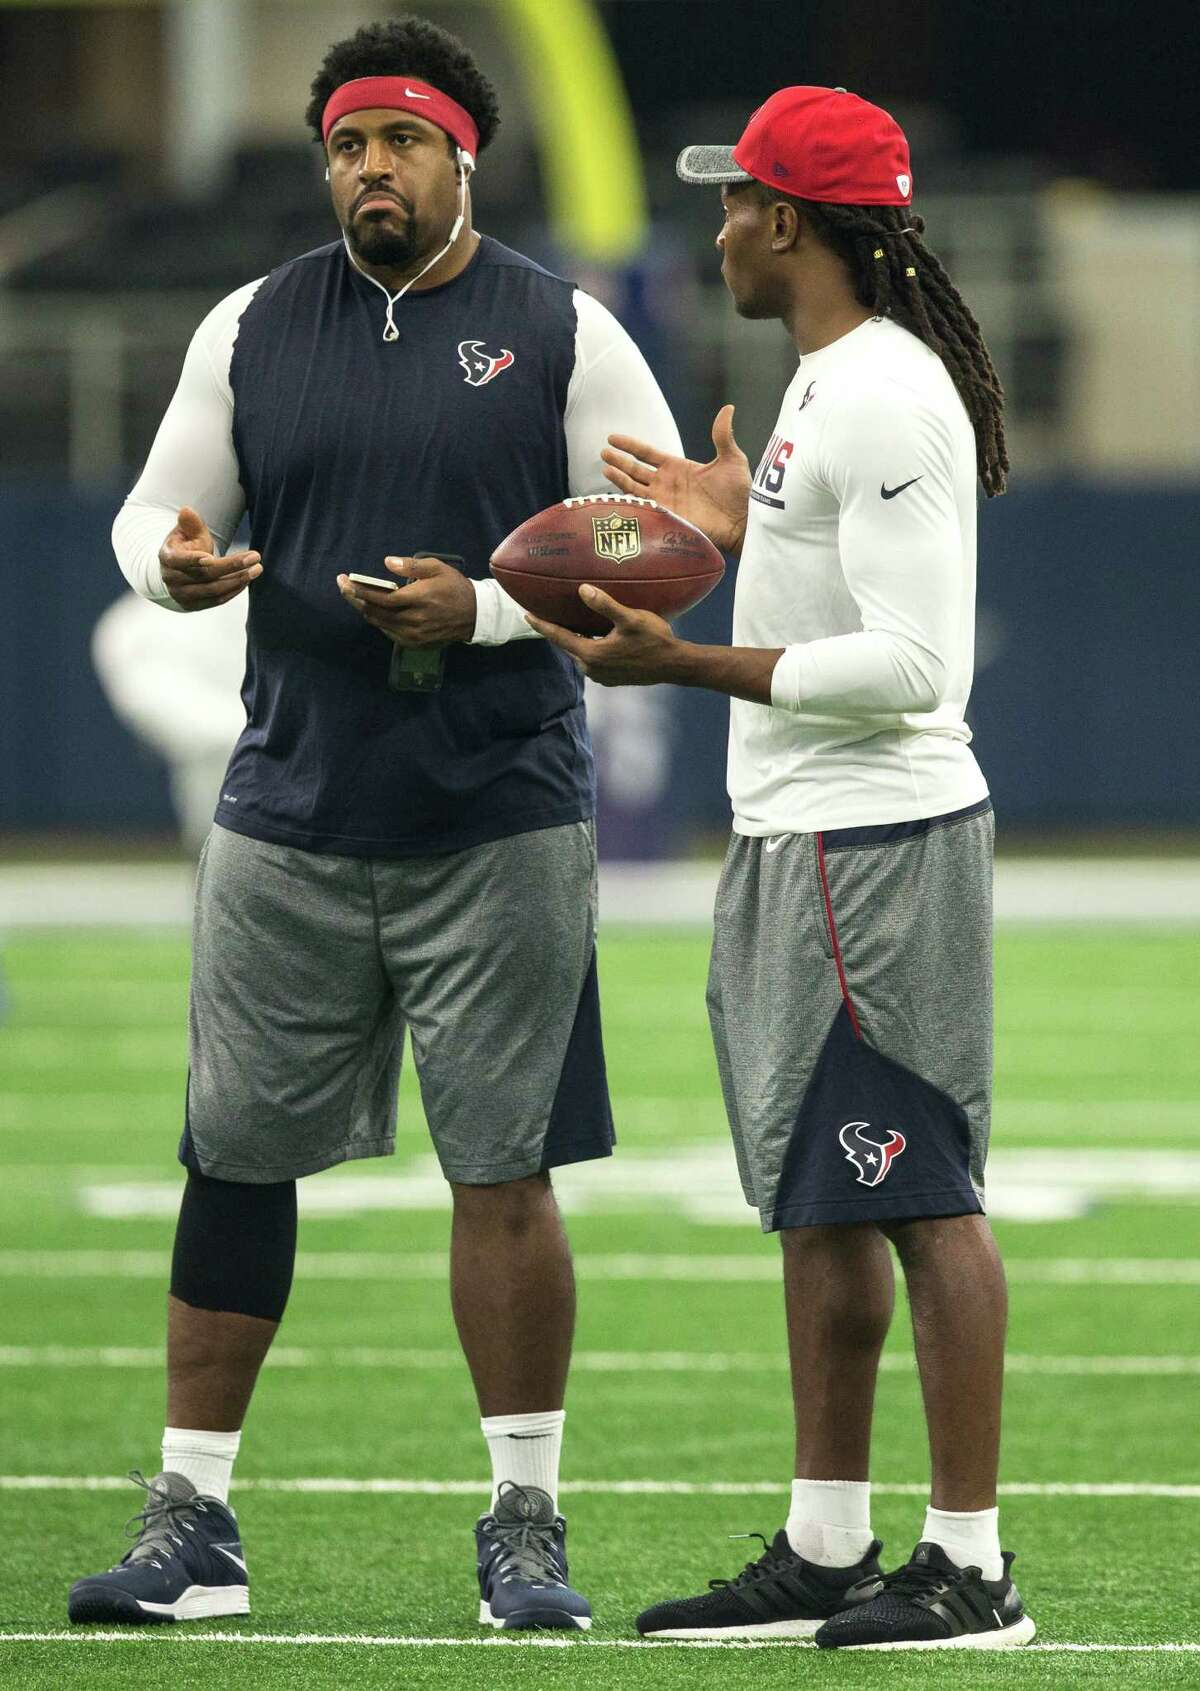 Houston Texans tackle Duane Brown and wide receiver DeAndre Hopkins stand on the field before an NFL pre-season football game against the Dallas Cowboys at AT&T Stadium on Thursday, Sept. 1, 2016, in Arlington, Texas.